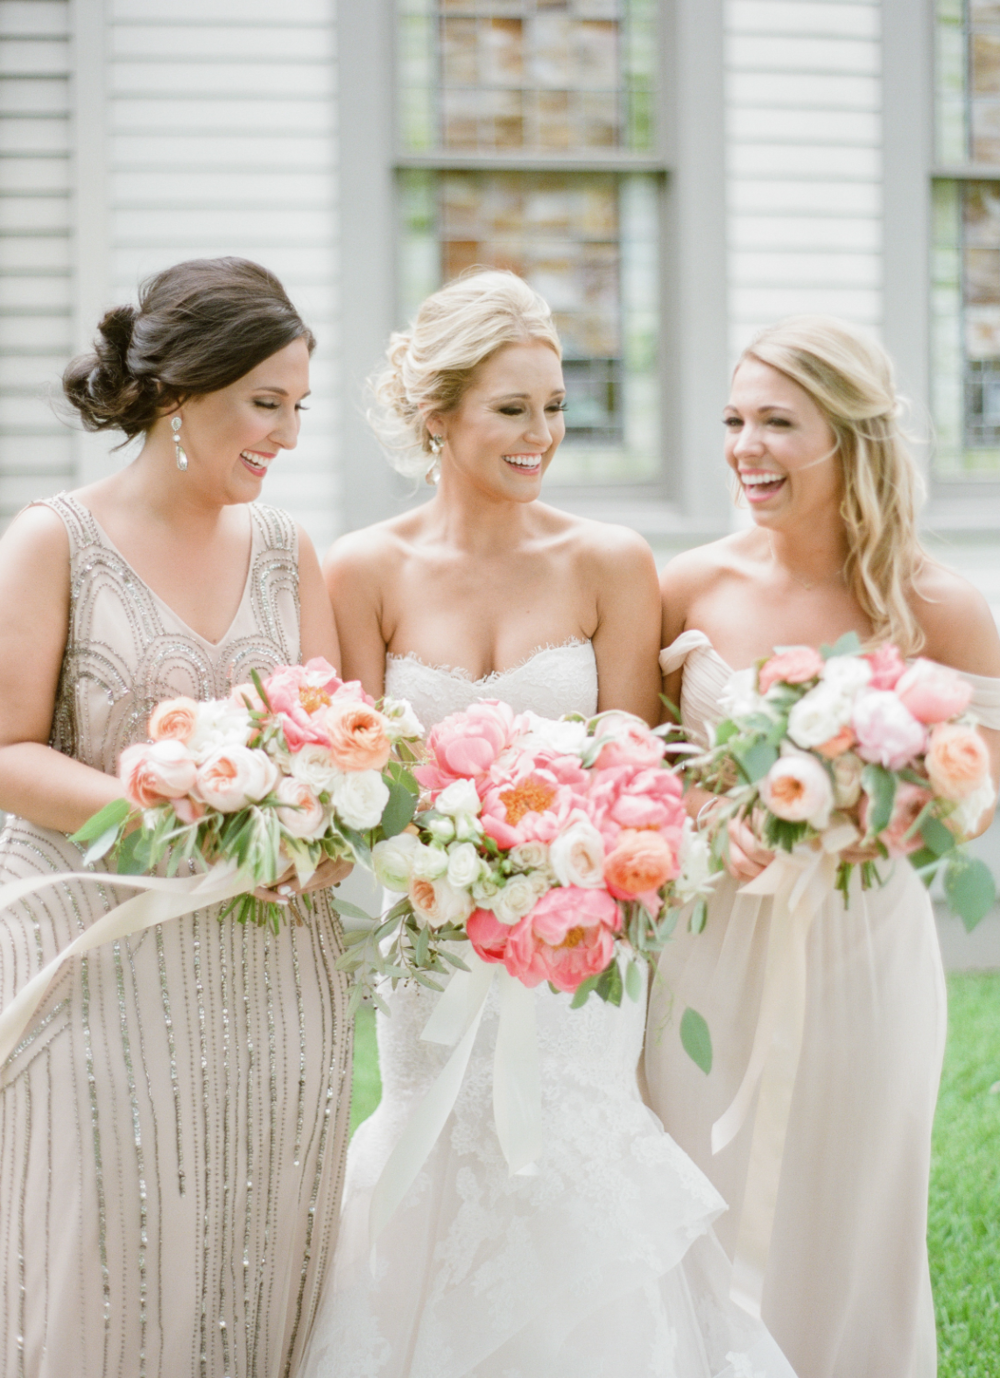 Bride & Bridesmaids in gold dresses with pink bouquets by Maxit Flower Design in Houston, TX